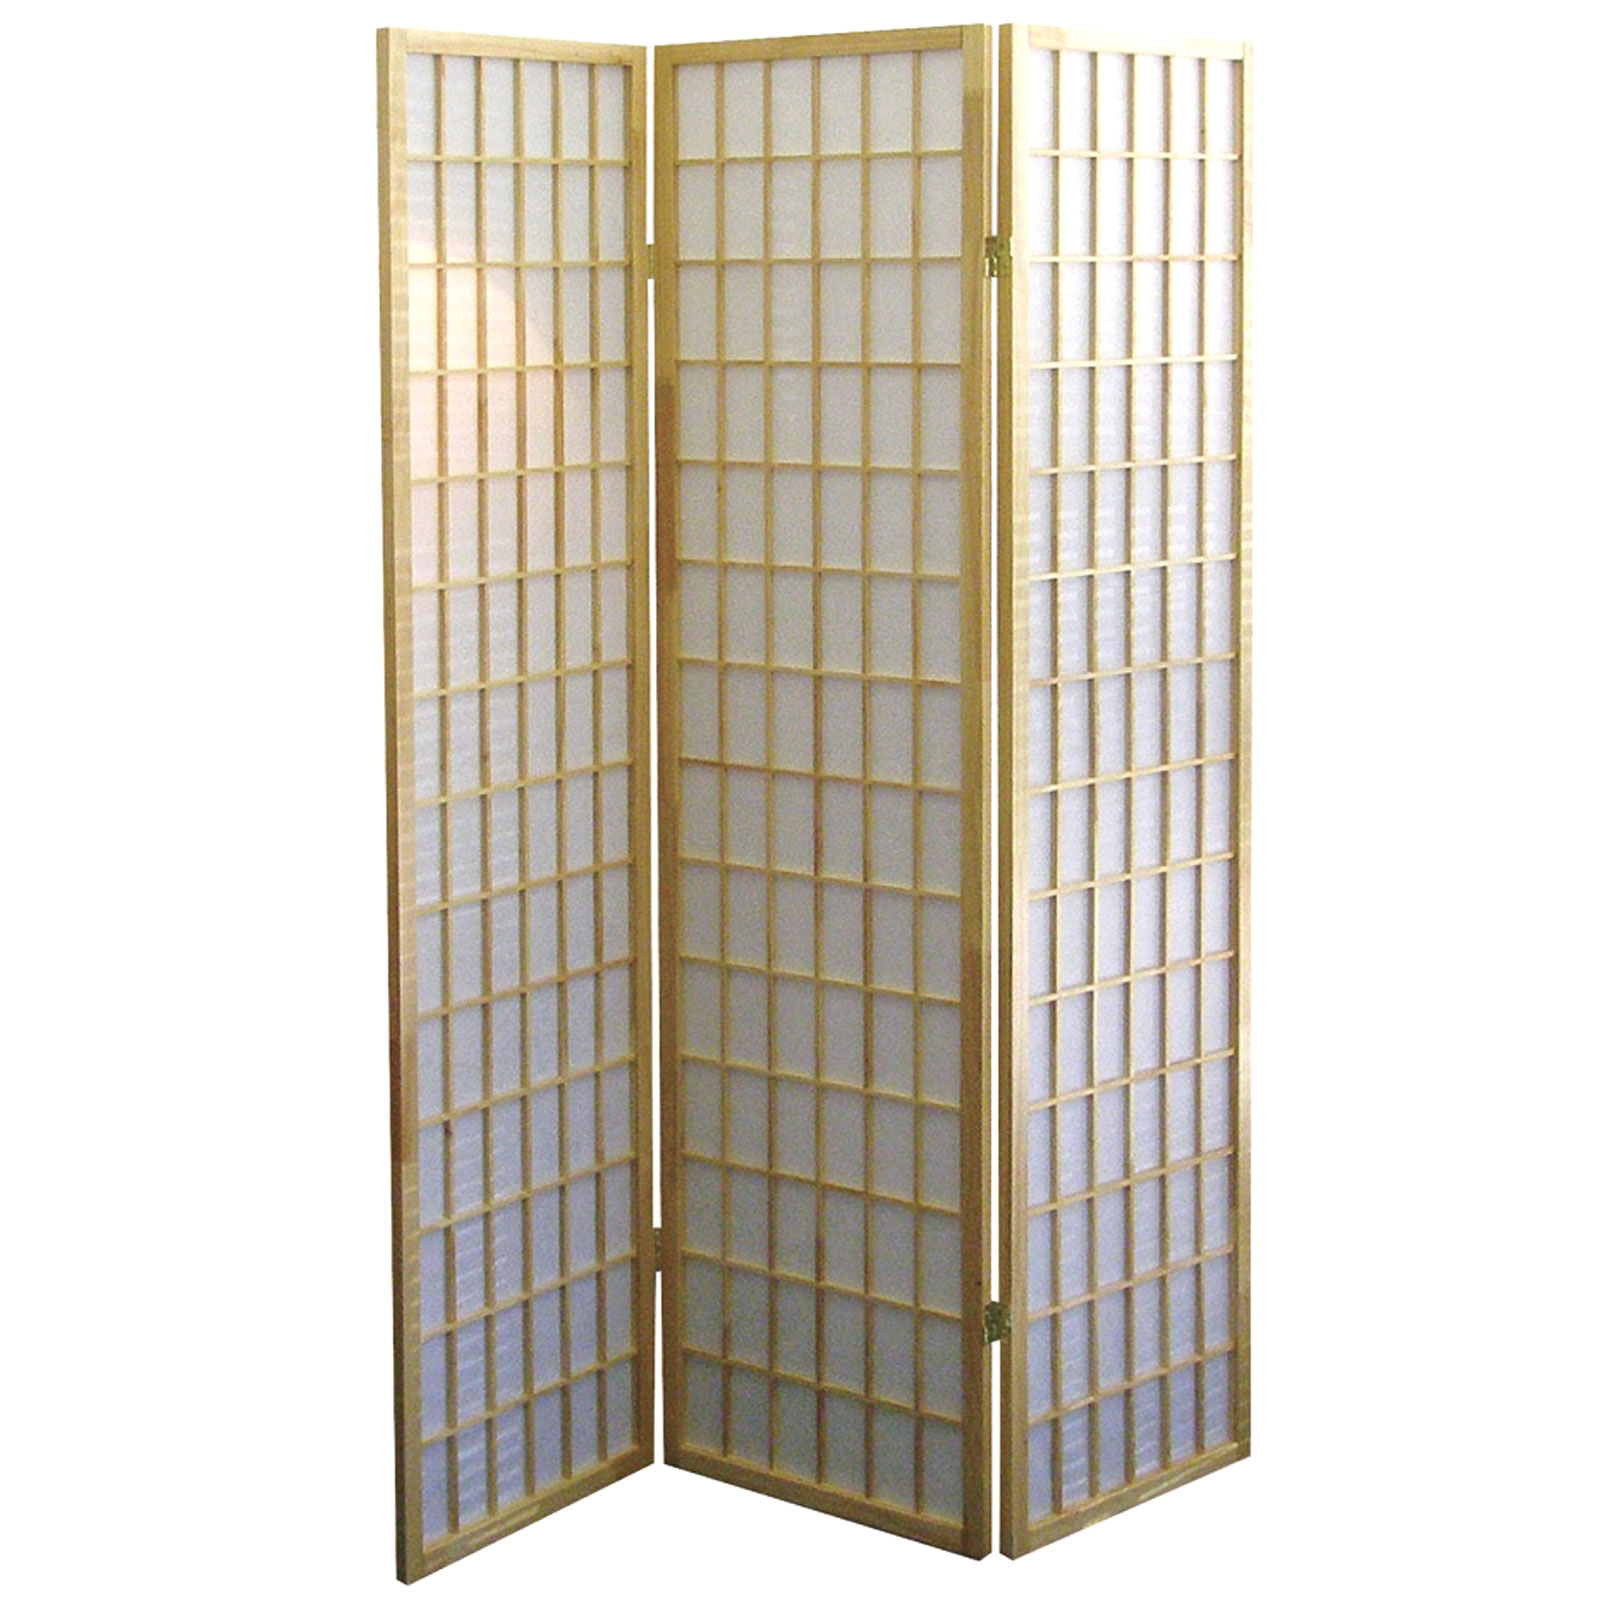 Wooden Room Divider By ORE International In Room Dividers